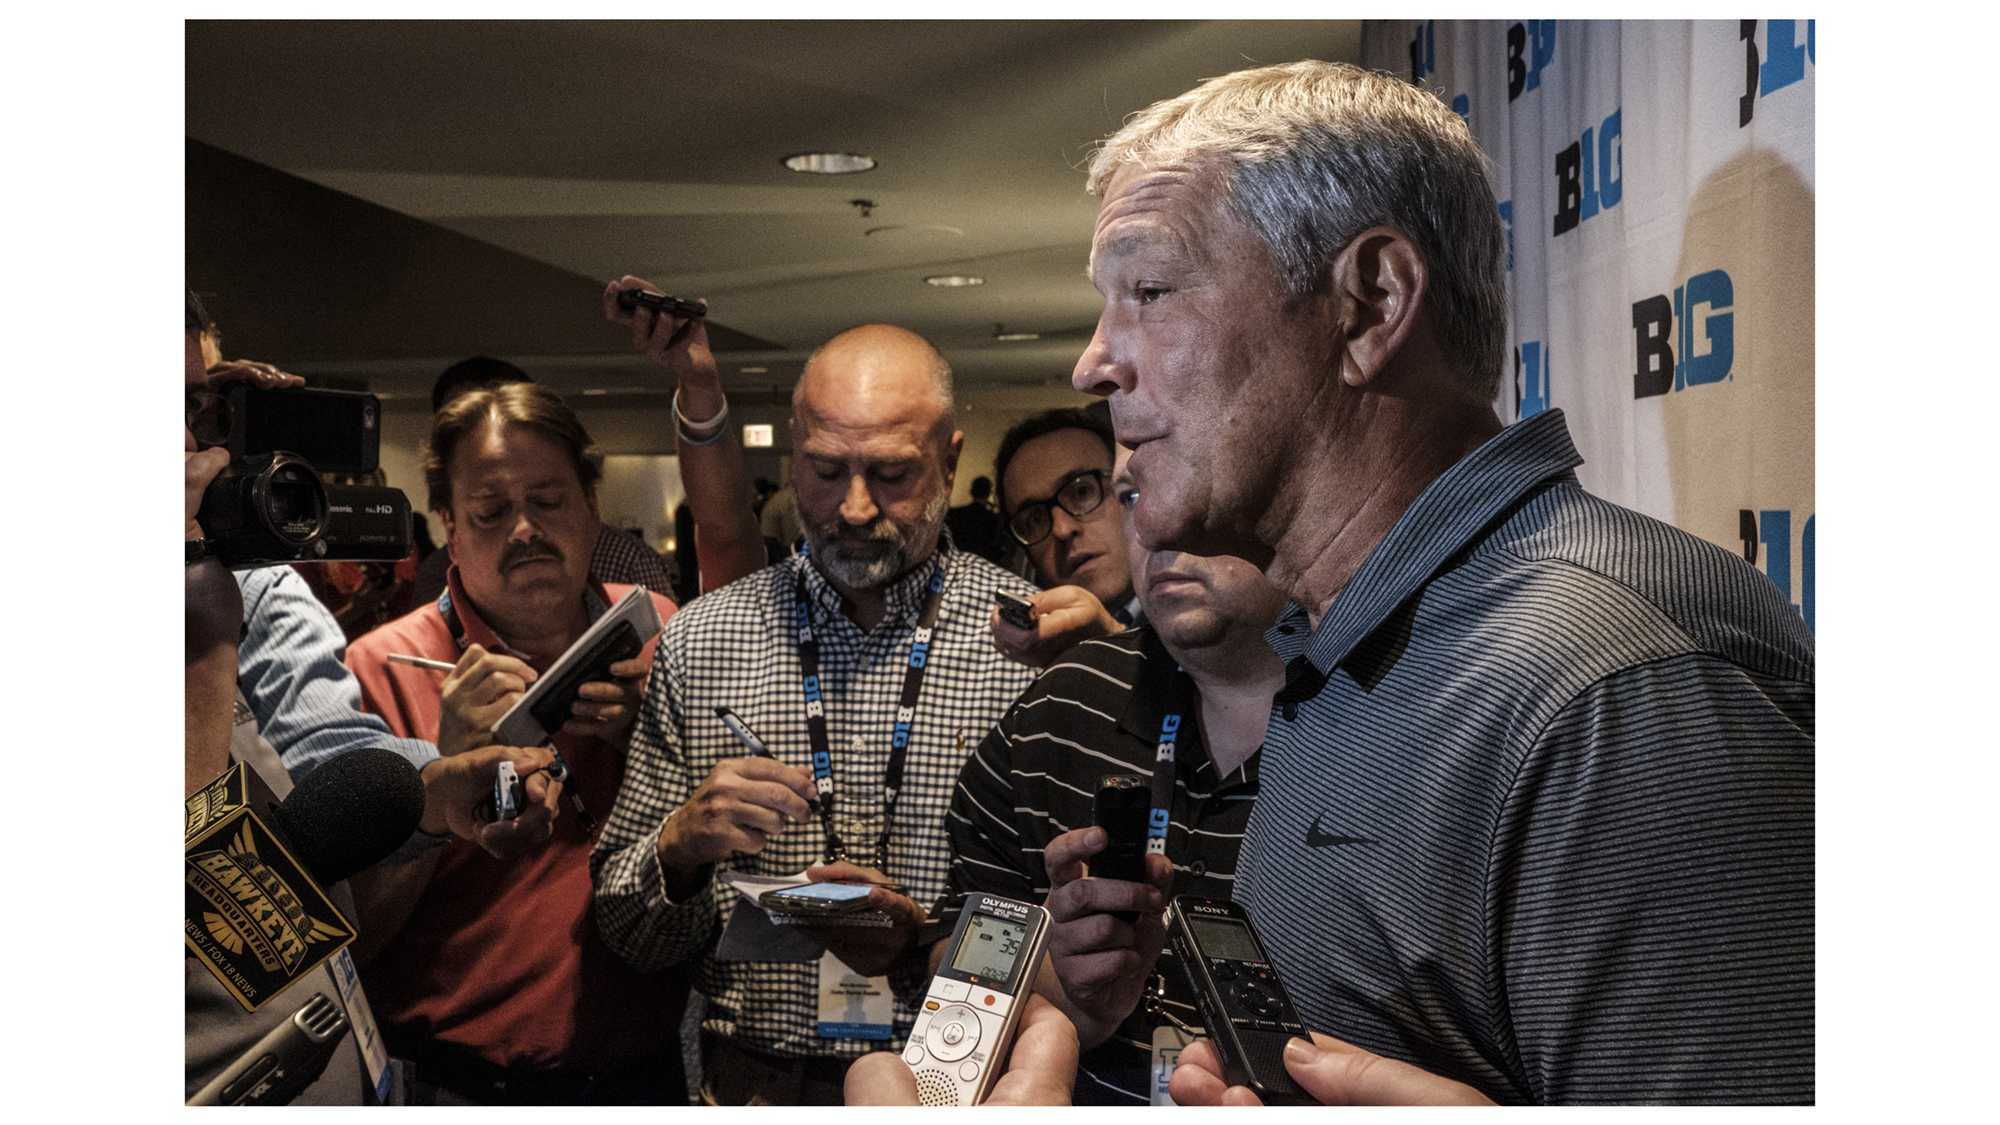 Iowa Head Coach Kirk Ferentz speaks with the media during Big Ten Football Media Days in Chicago on Monday, July 23, 2018. (Nick Rohlman/The Daily Iowan)